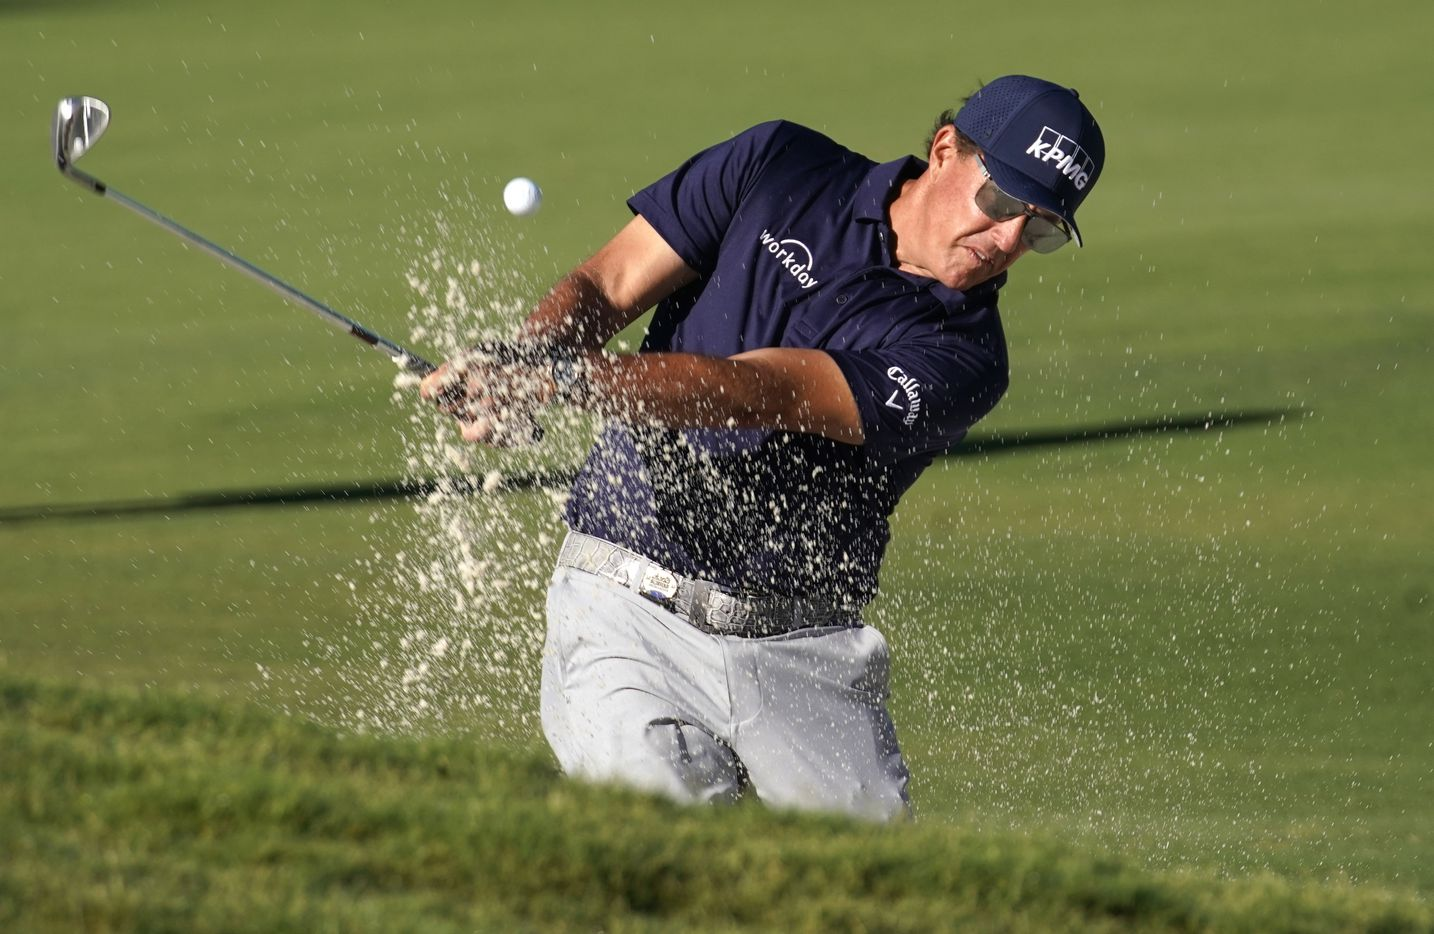 PGA golfers Phil Mickelson ties a shot out of the green side trap on No. 11 during the opening round of the Charles Schwab Challenge at the Colonial Country Club in Fort Worth, Thursday, June 11, 2020. The Challenge is the first tour event since the COVID-19 pandemic began. (Tom Fox/The Dallas Morning News)